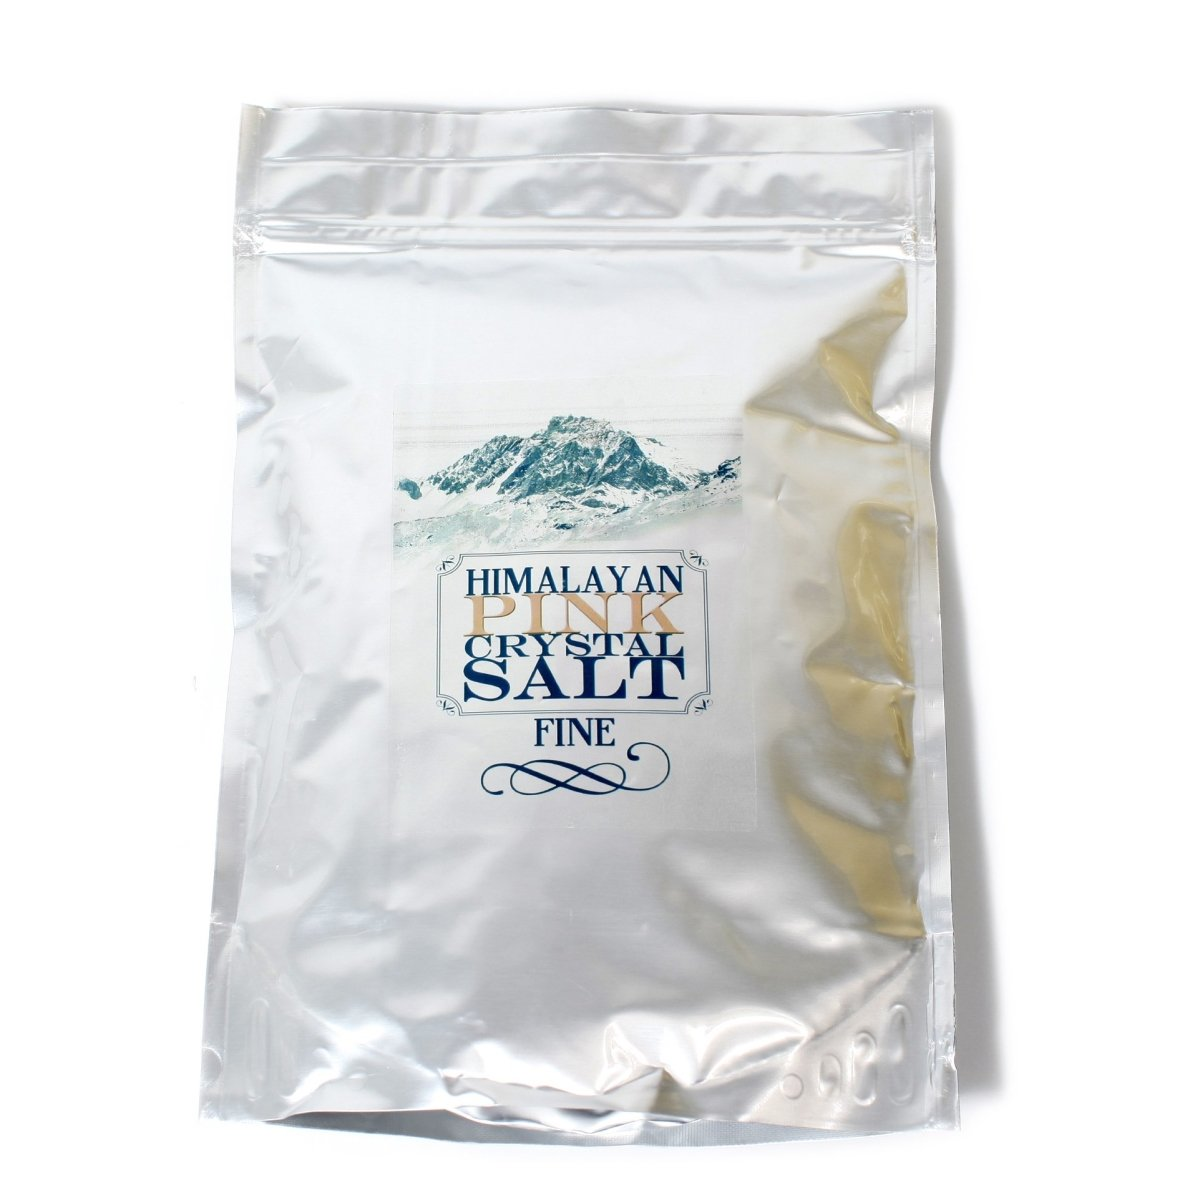 Himalayan Crystal Salts - Fine - Mystic Moments UK